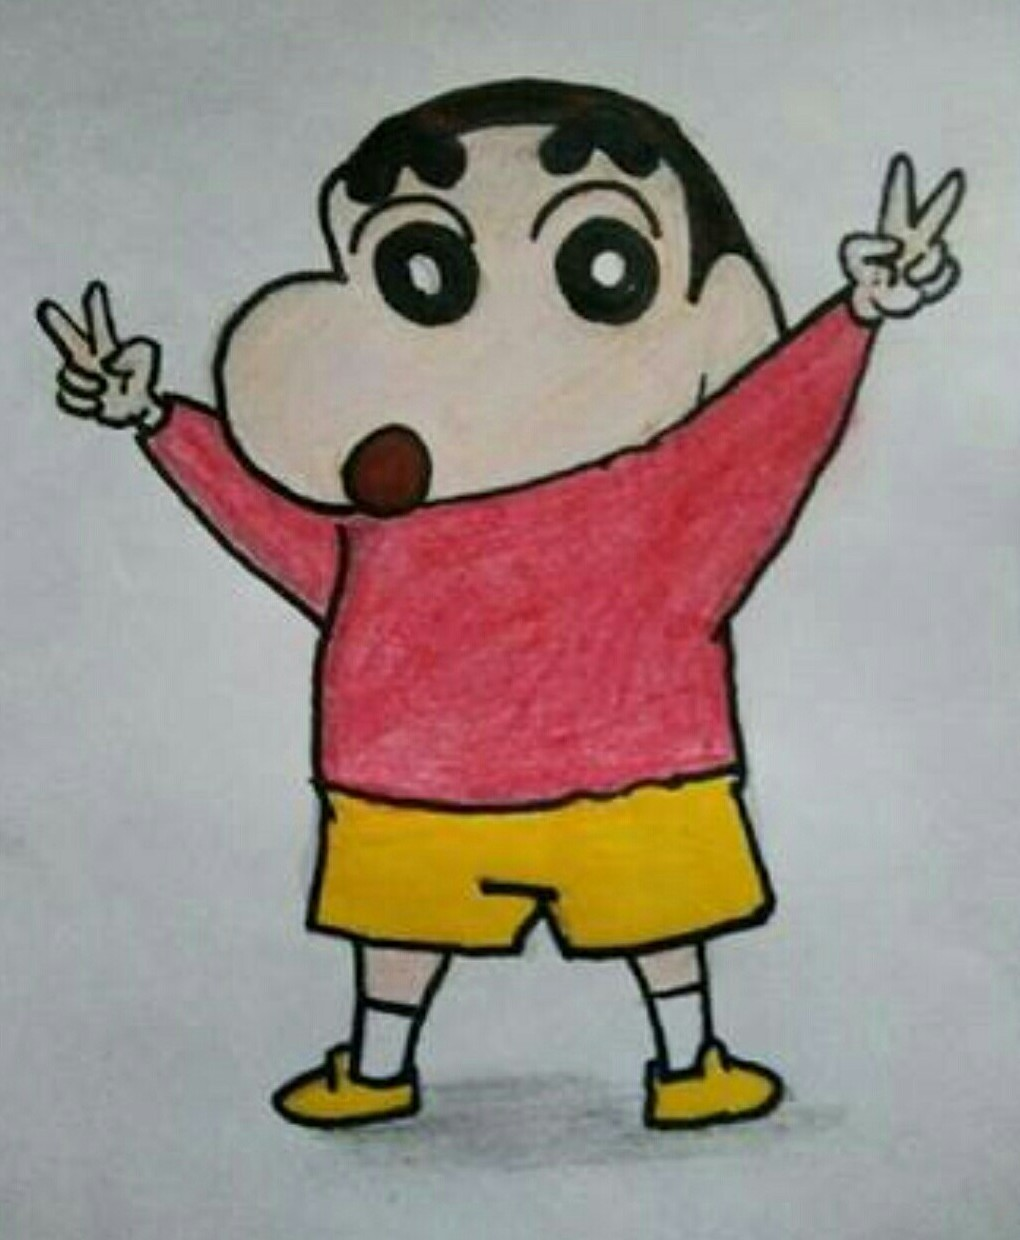 Draw Shin Chan S Image Brainly In